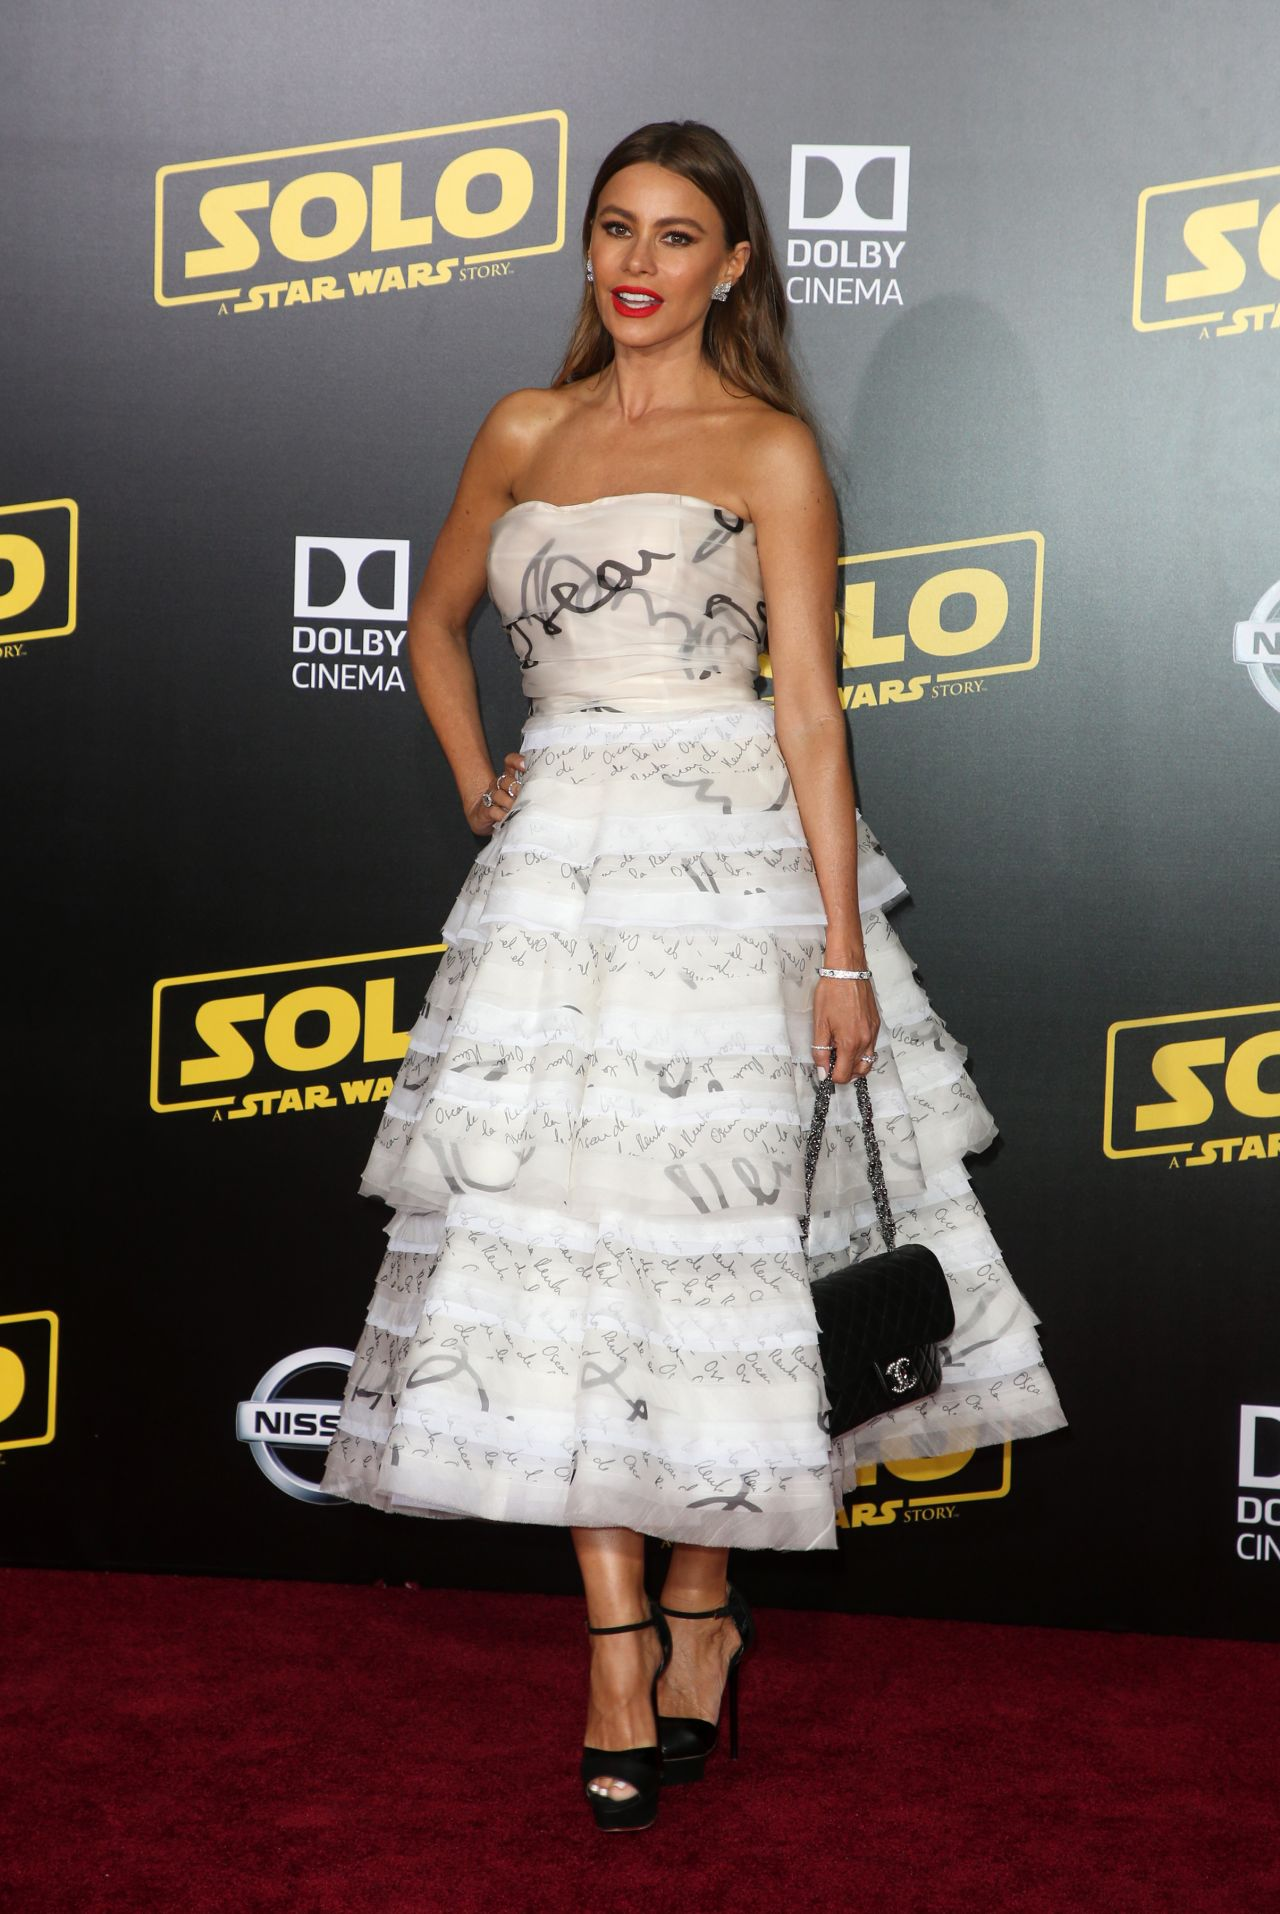 Gorgeous cougar Sofia Vergara  at Solo: A Star Wars Story premiere in LA